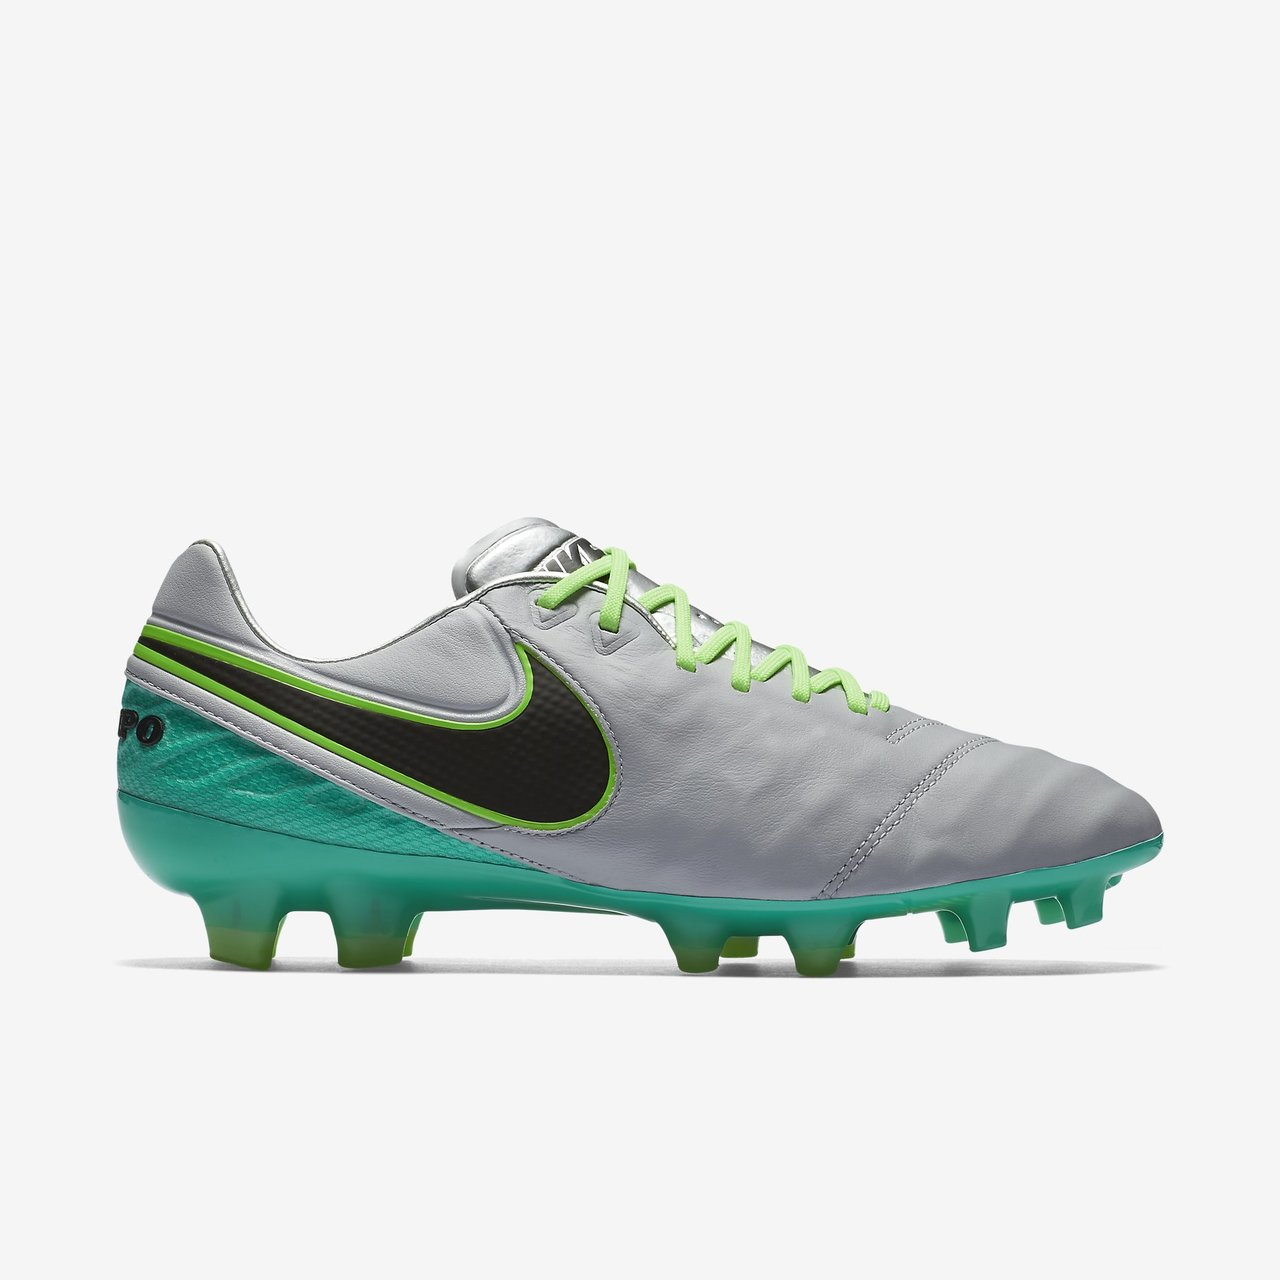 43bb3aa5c Click to enlarge image  nike tiempo legend vi fg elite pack wolf grey black clear jade a.jpg ...